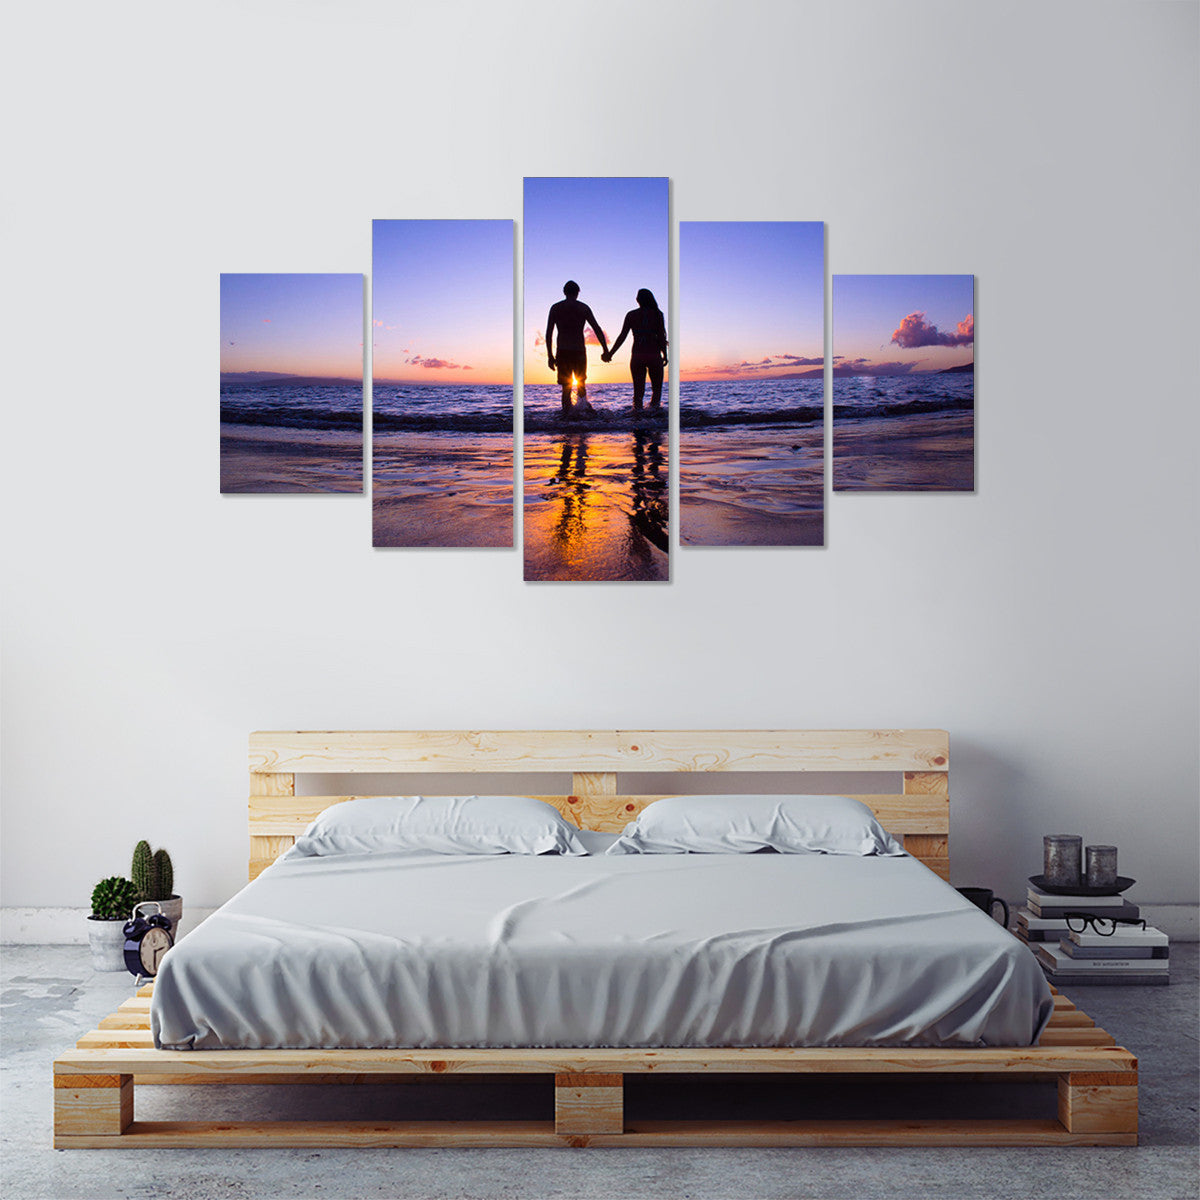 Sunset Lover 5 Piece Canvas